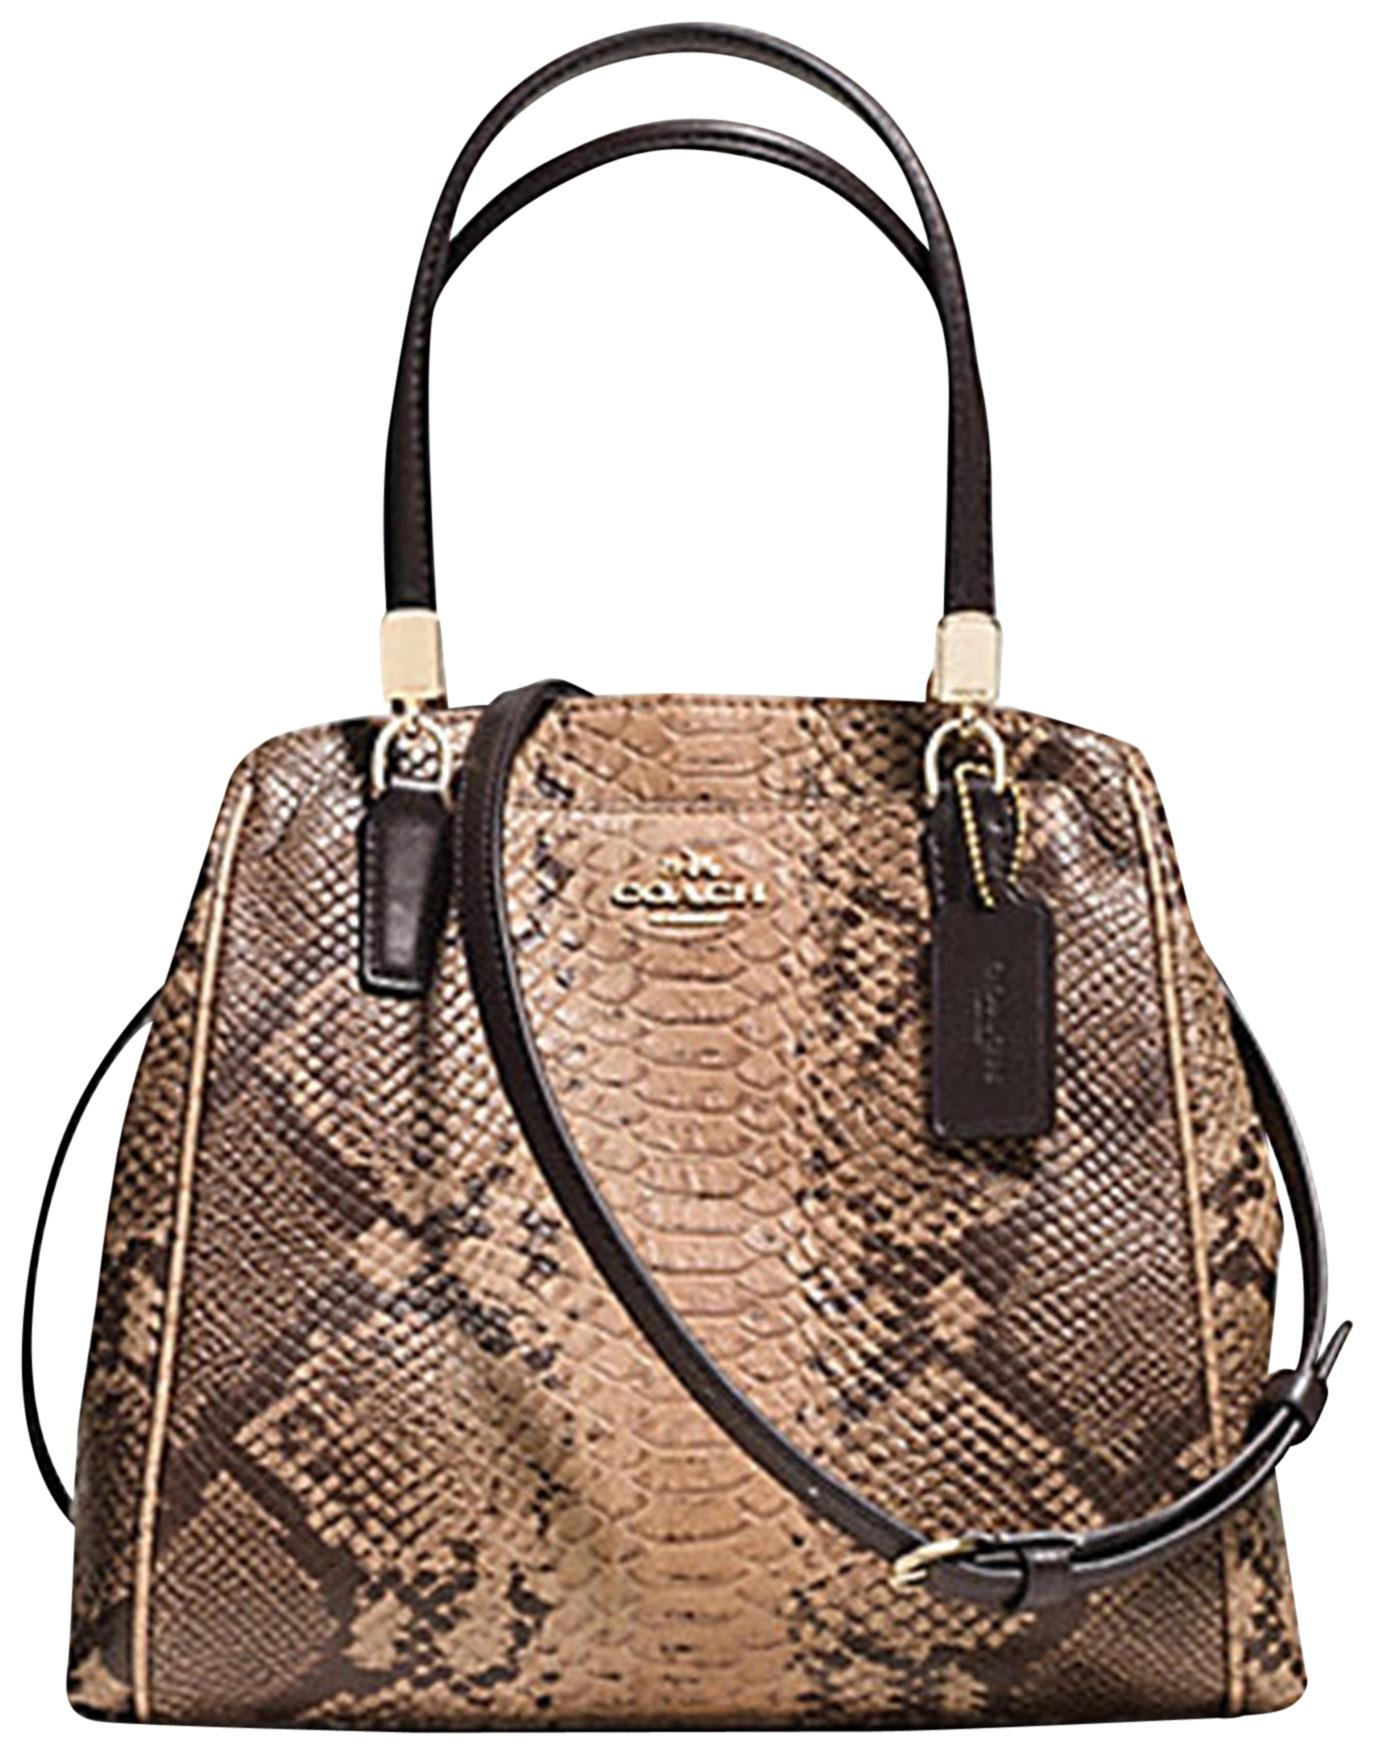 8274f7b54126 discount coach colorblock python shoulder bag 0cfff 5385f  low cost coach  minetta snakeskin python satchel in natural 983fa 38d96